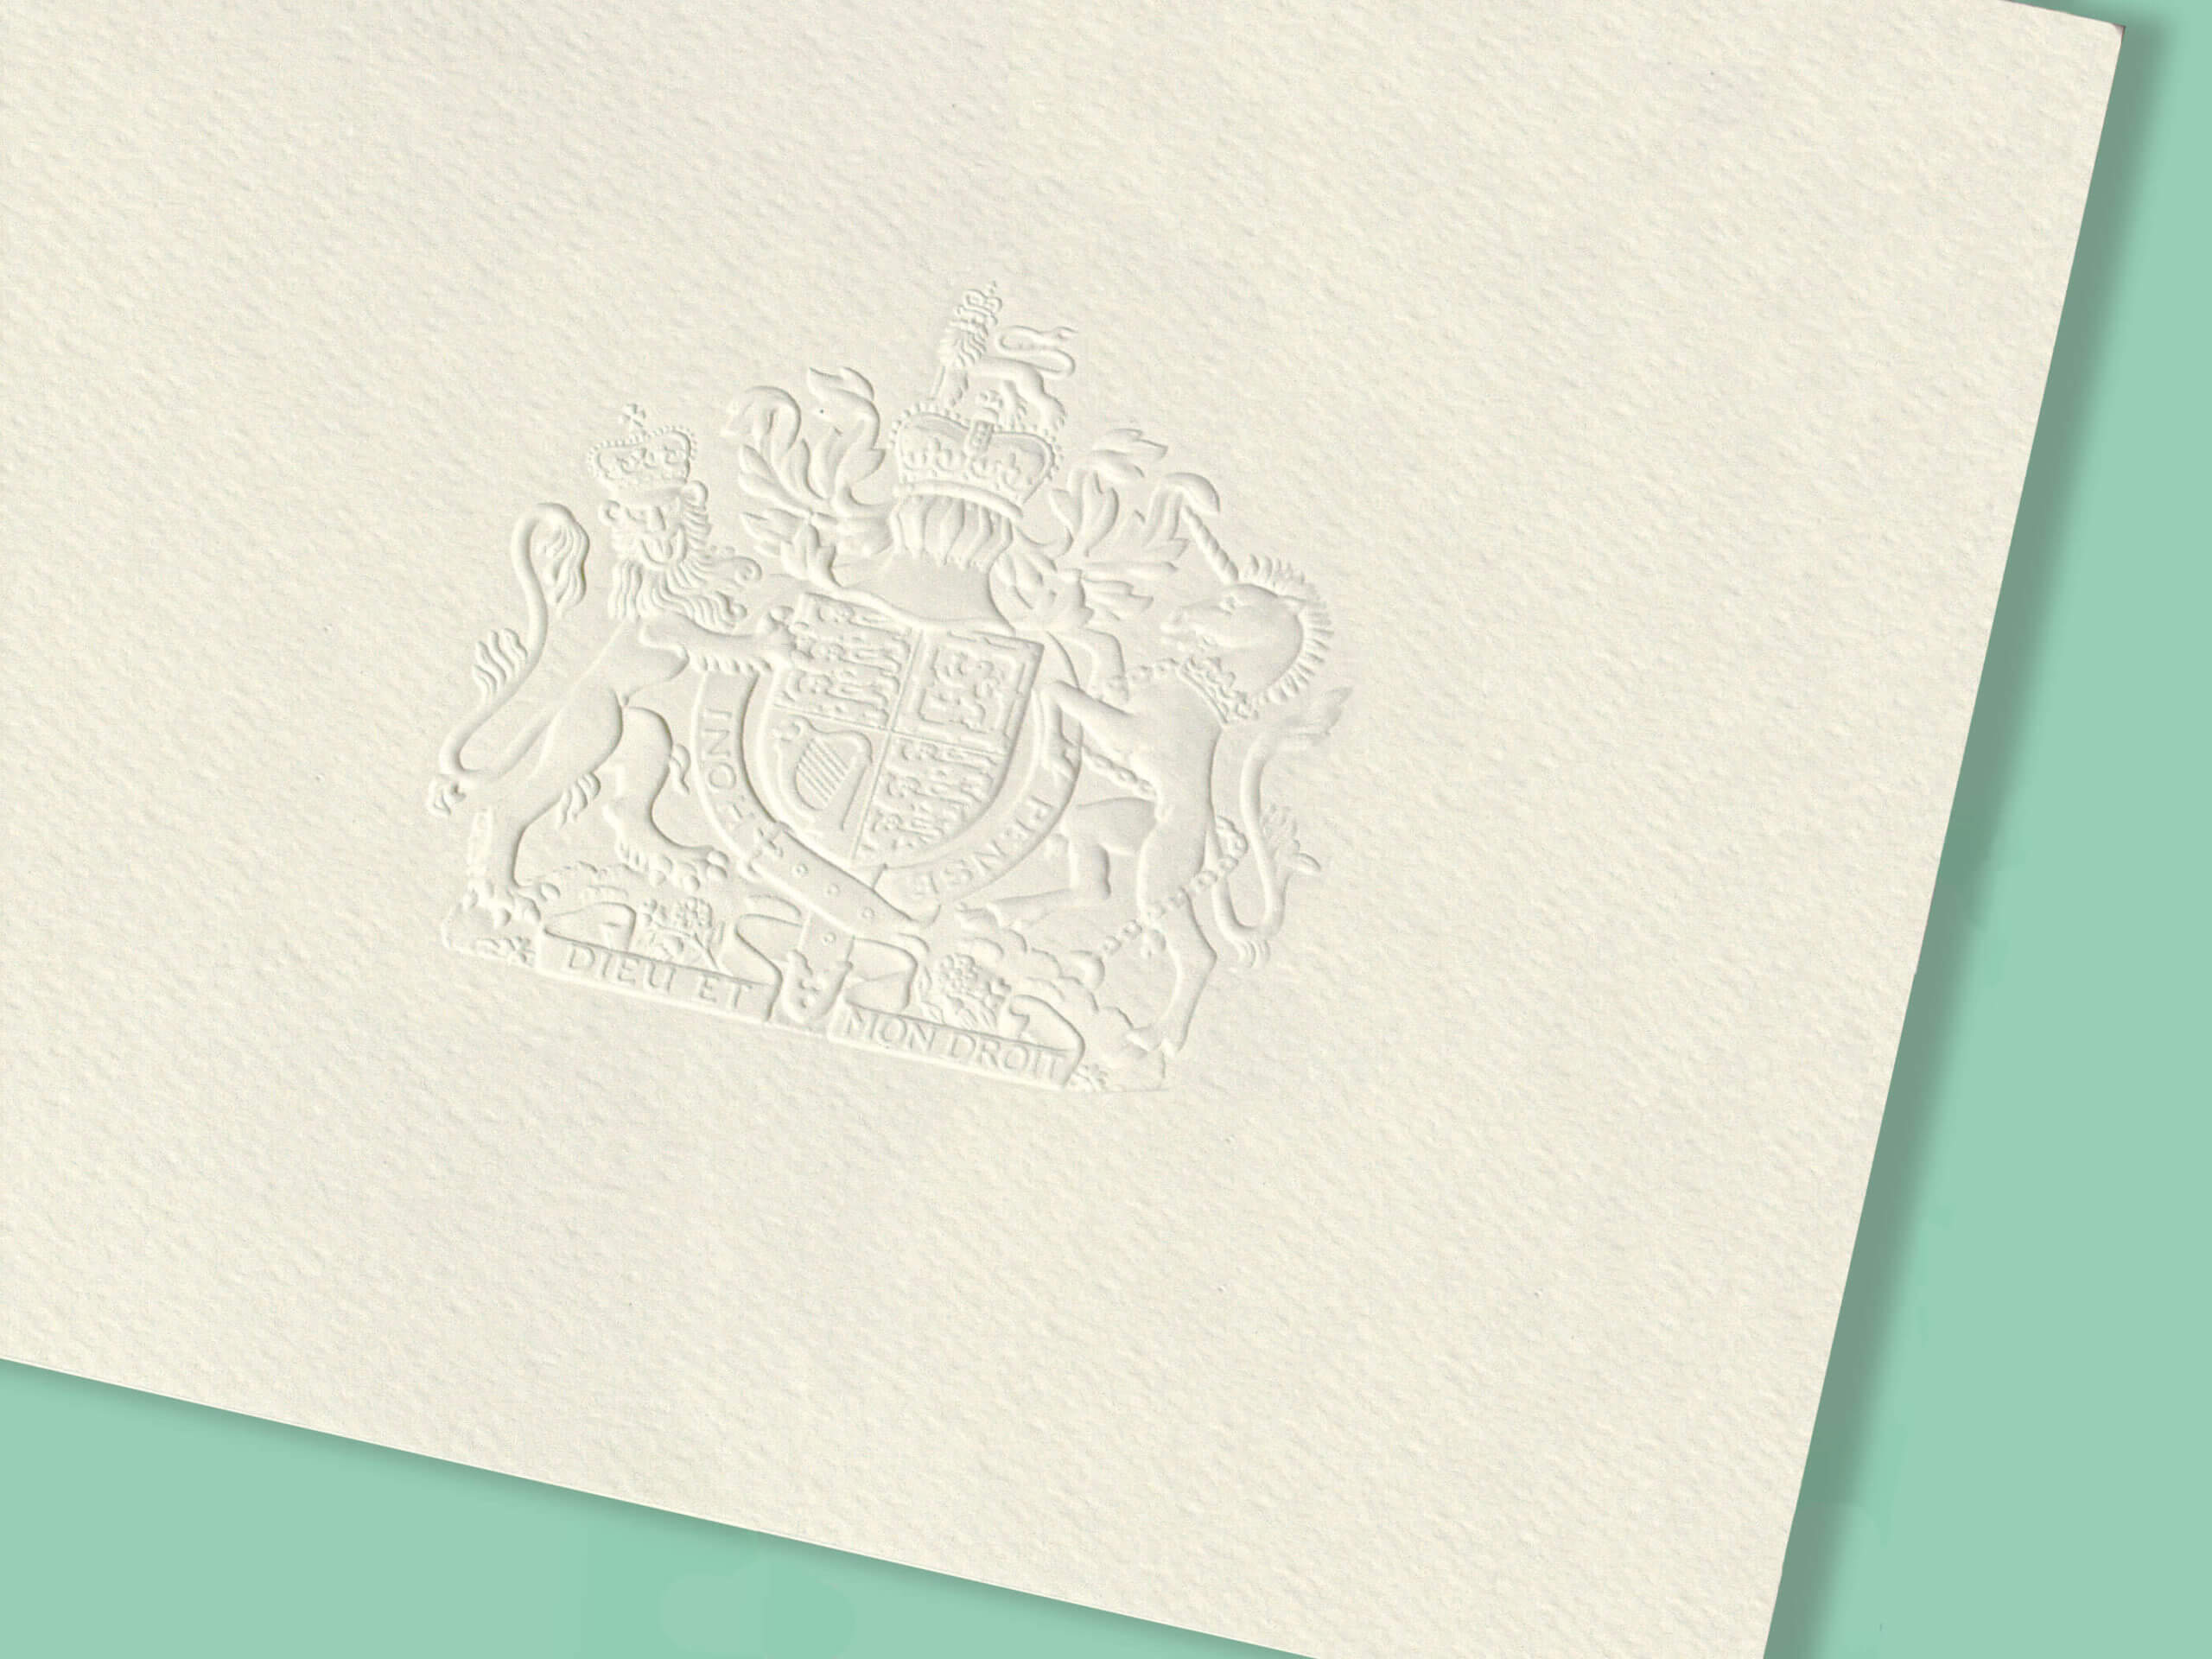 Scaled Prince Edward invite